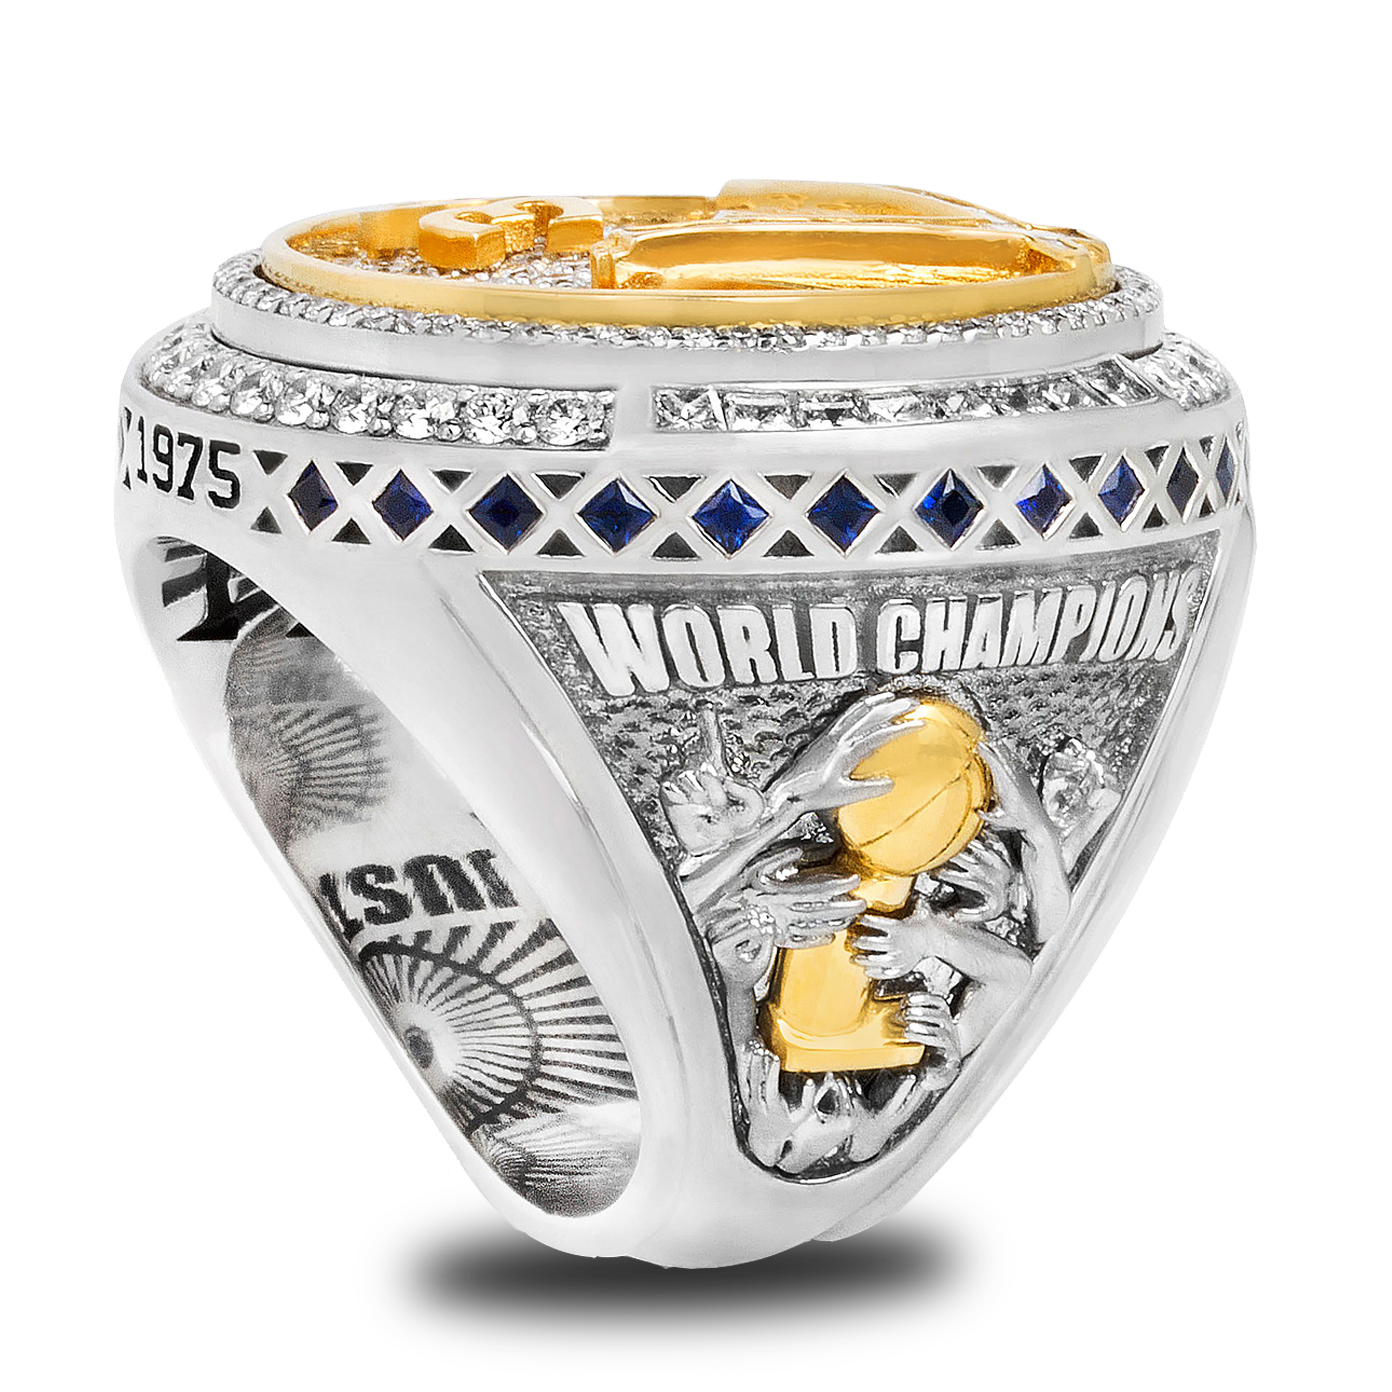 repins rings msu pin ndsu national we love ring championship